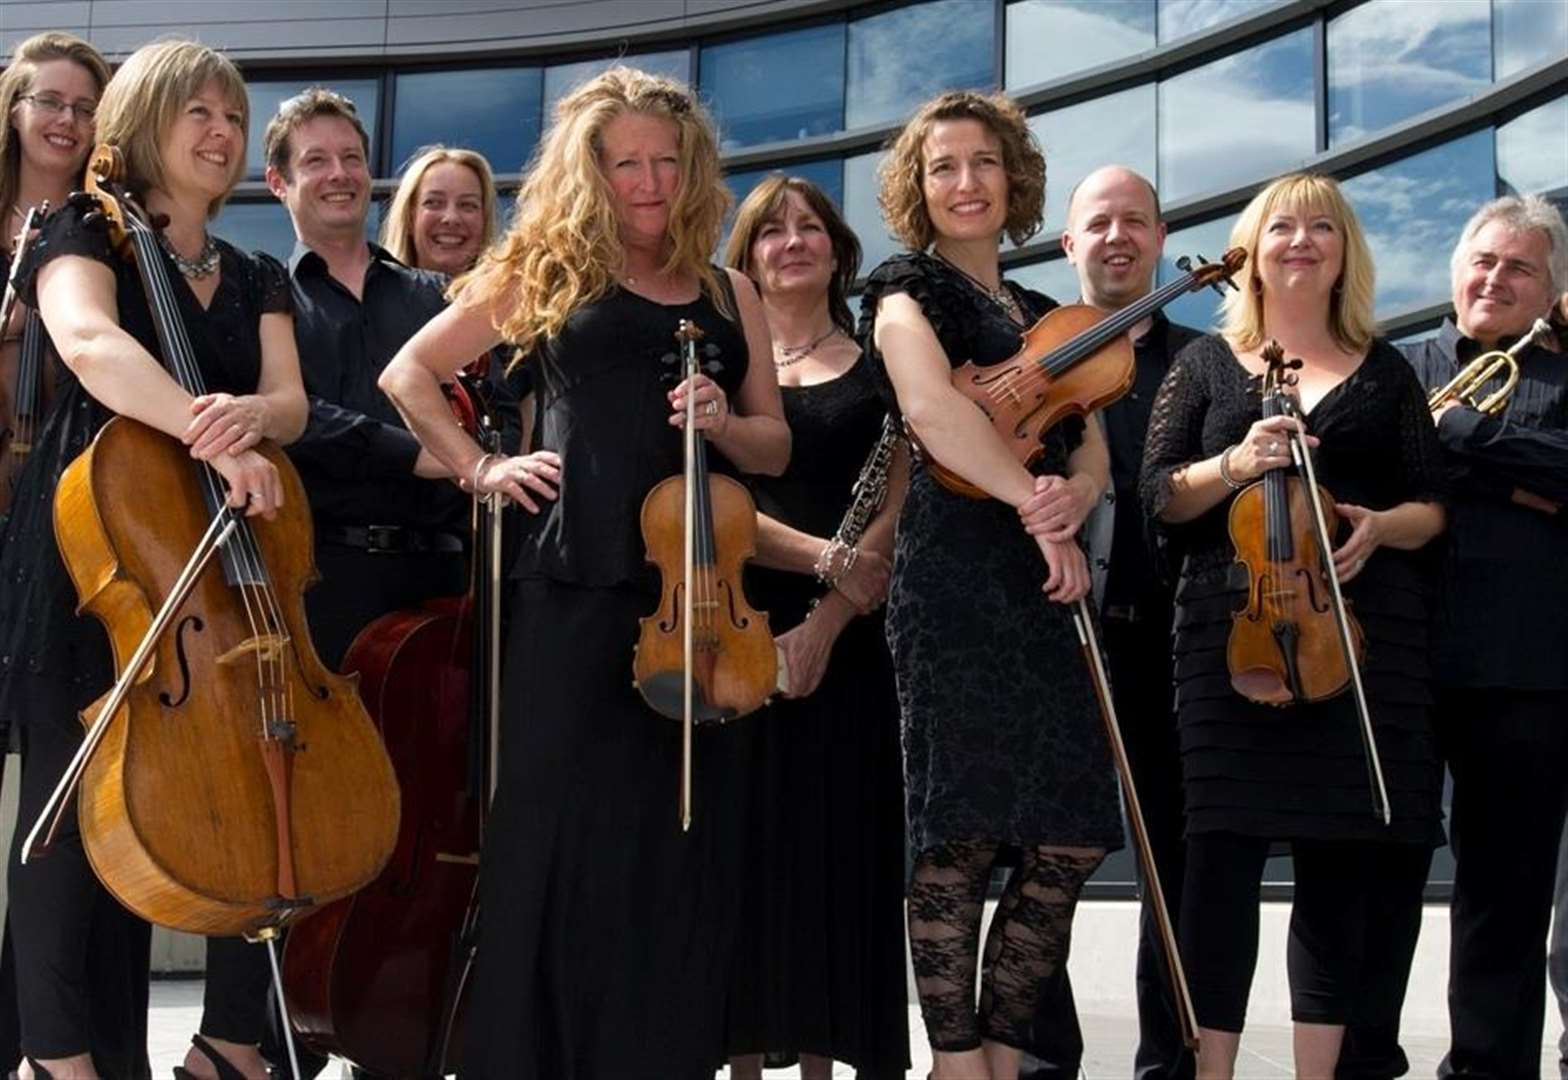 CONCERT REVIEW: Magical night of classical music at Crowland Abbey